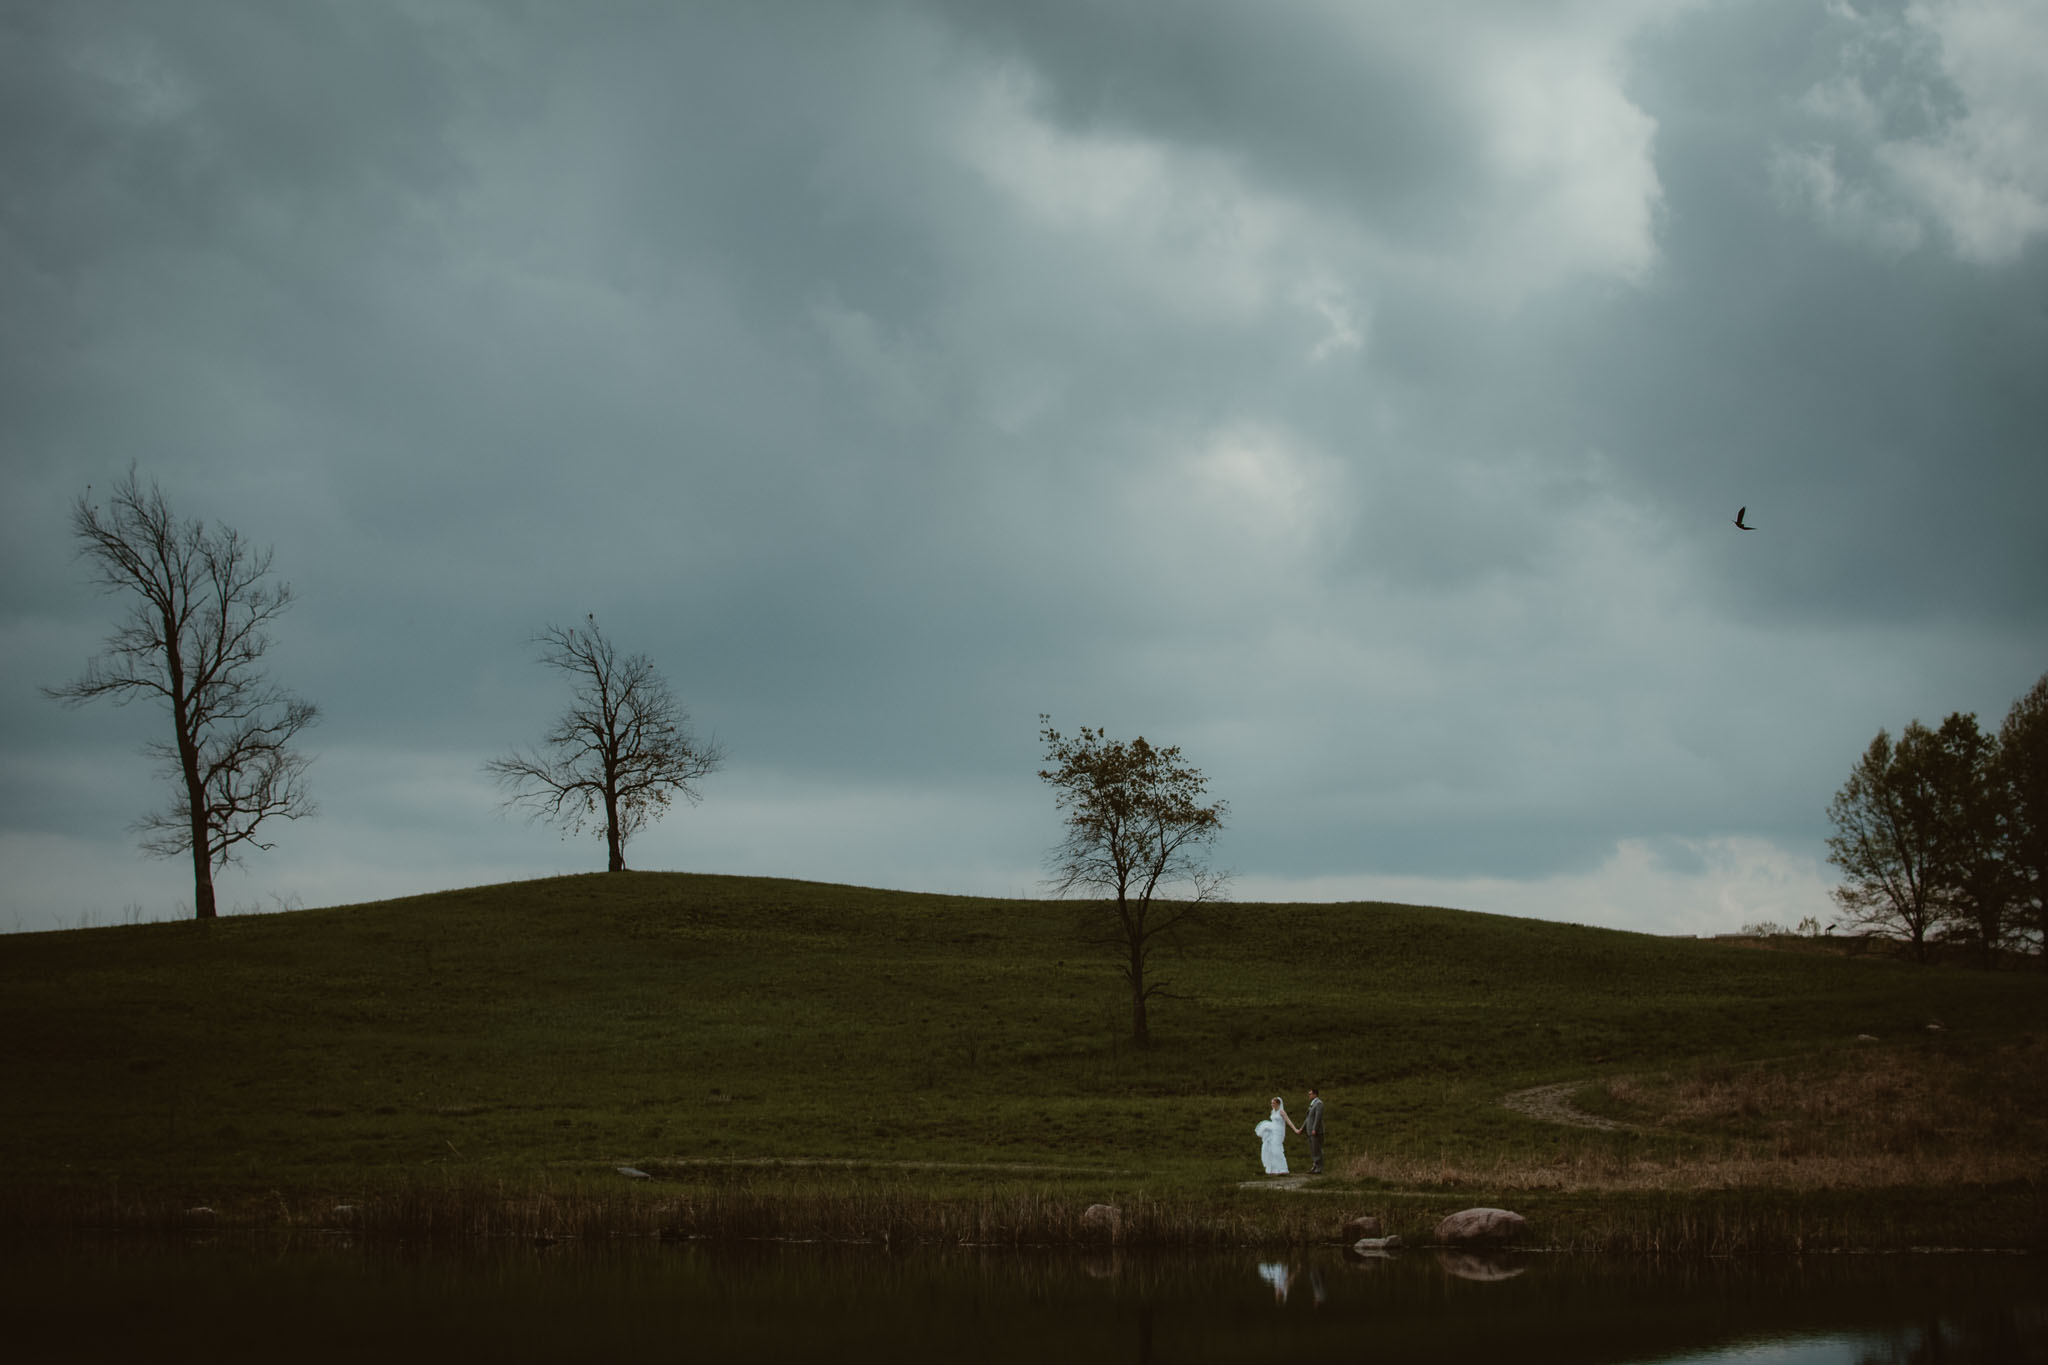 Landscape with couple walking along a pond as storm clouds roll in